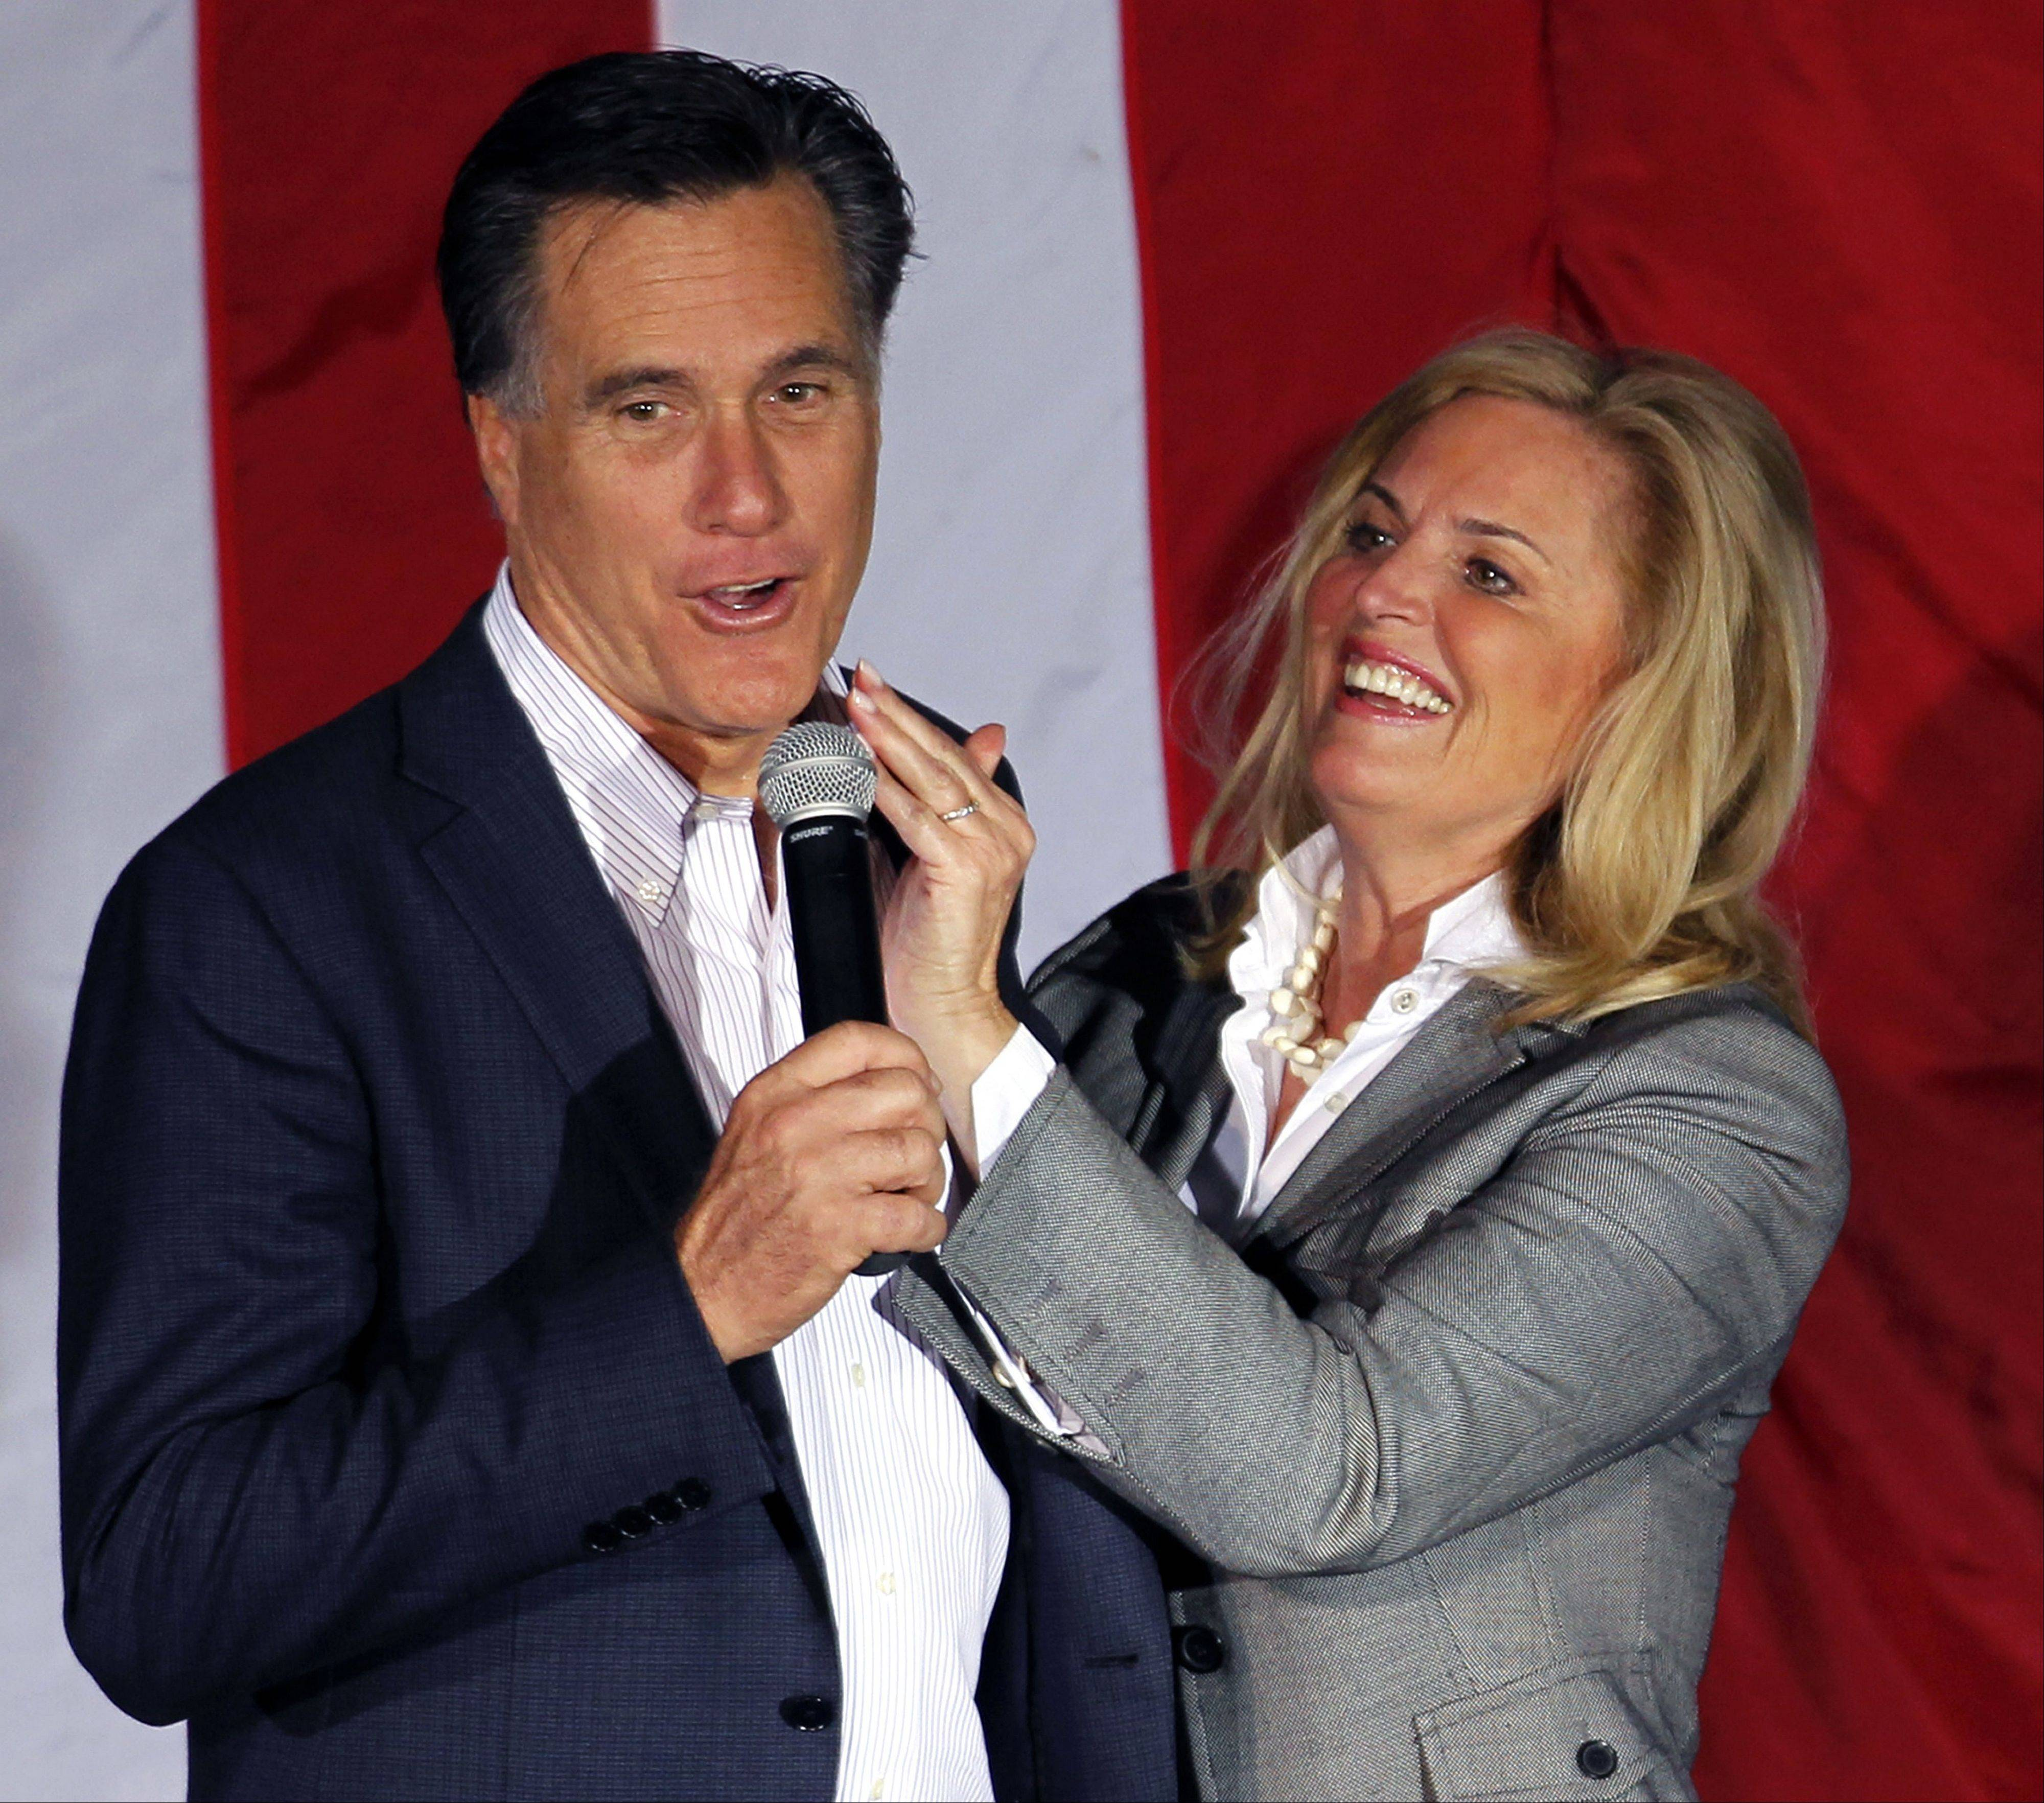 Ann Romney, wife of Republican presidential nominee Mitt Romney, wipes lipstick off his face after kissing him during a campaign rally in March.